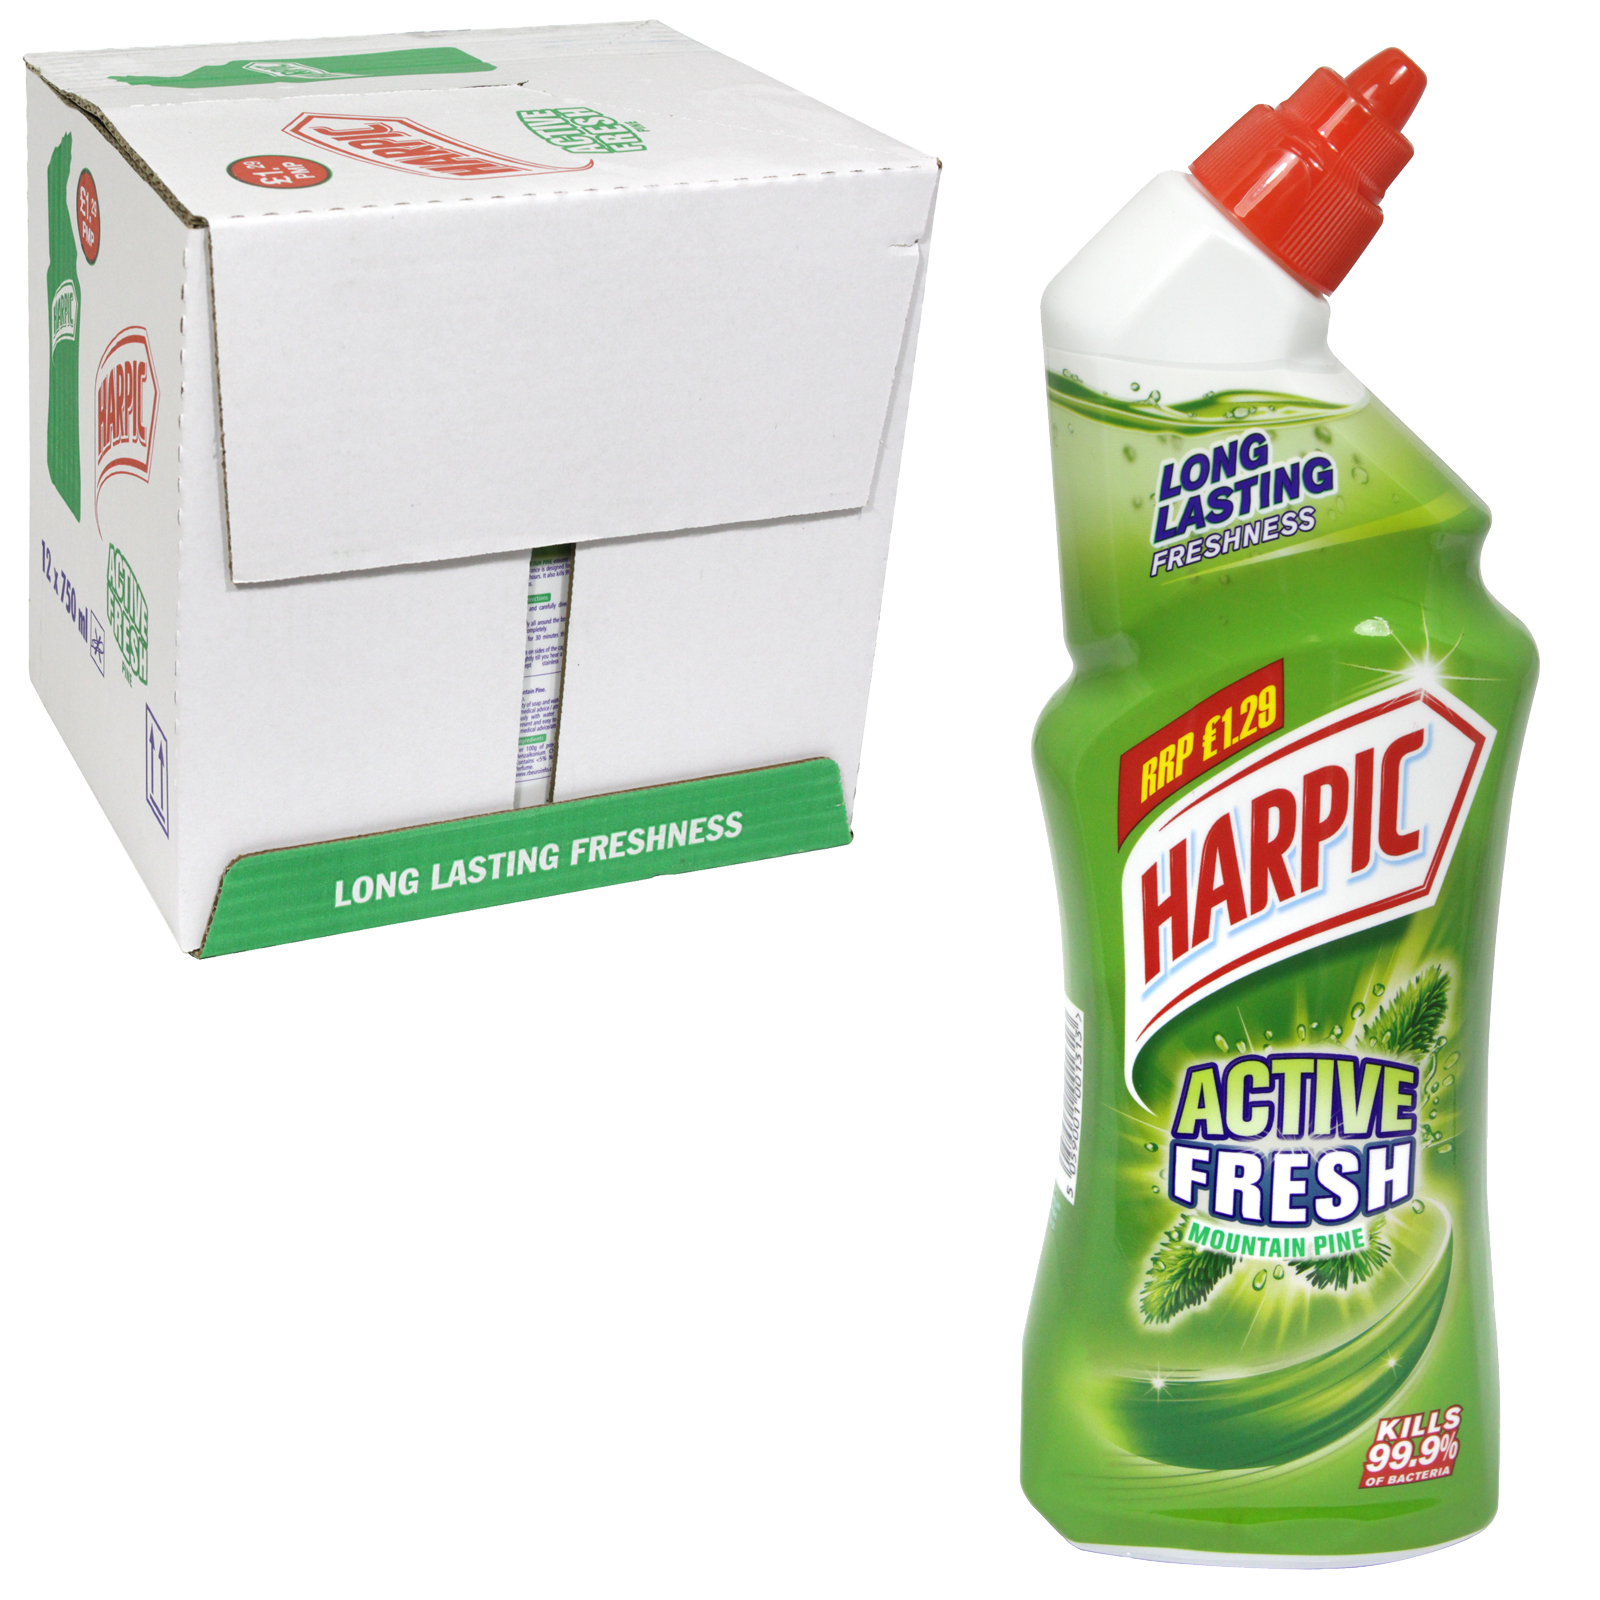 HARPIC ACTIVE FRESH 750ML MOUNTAIN PINE PM £1.29 X12